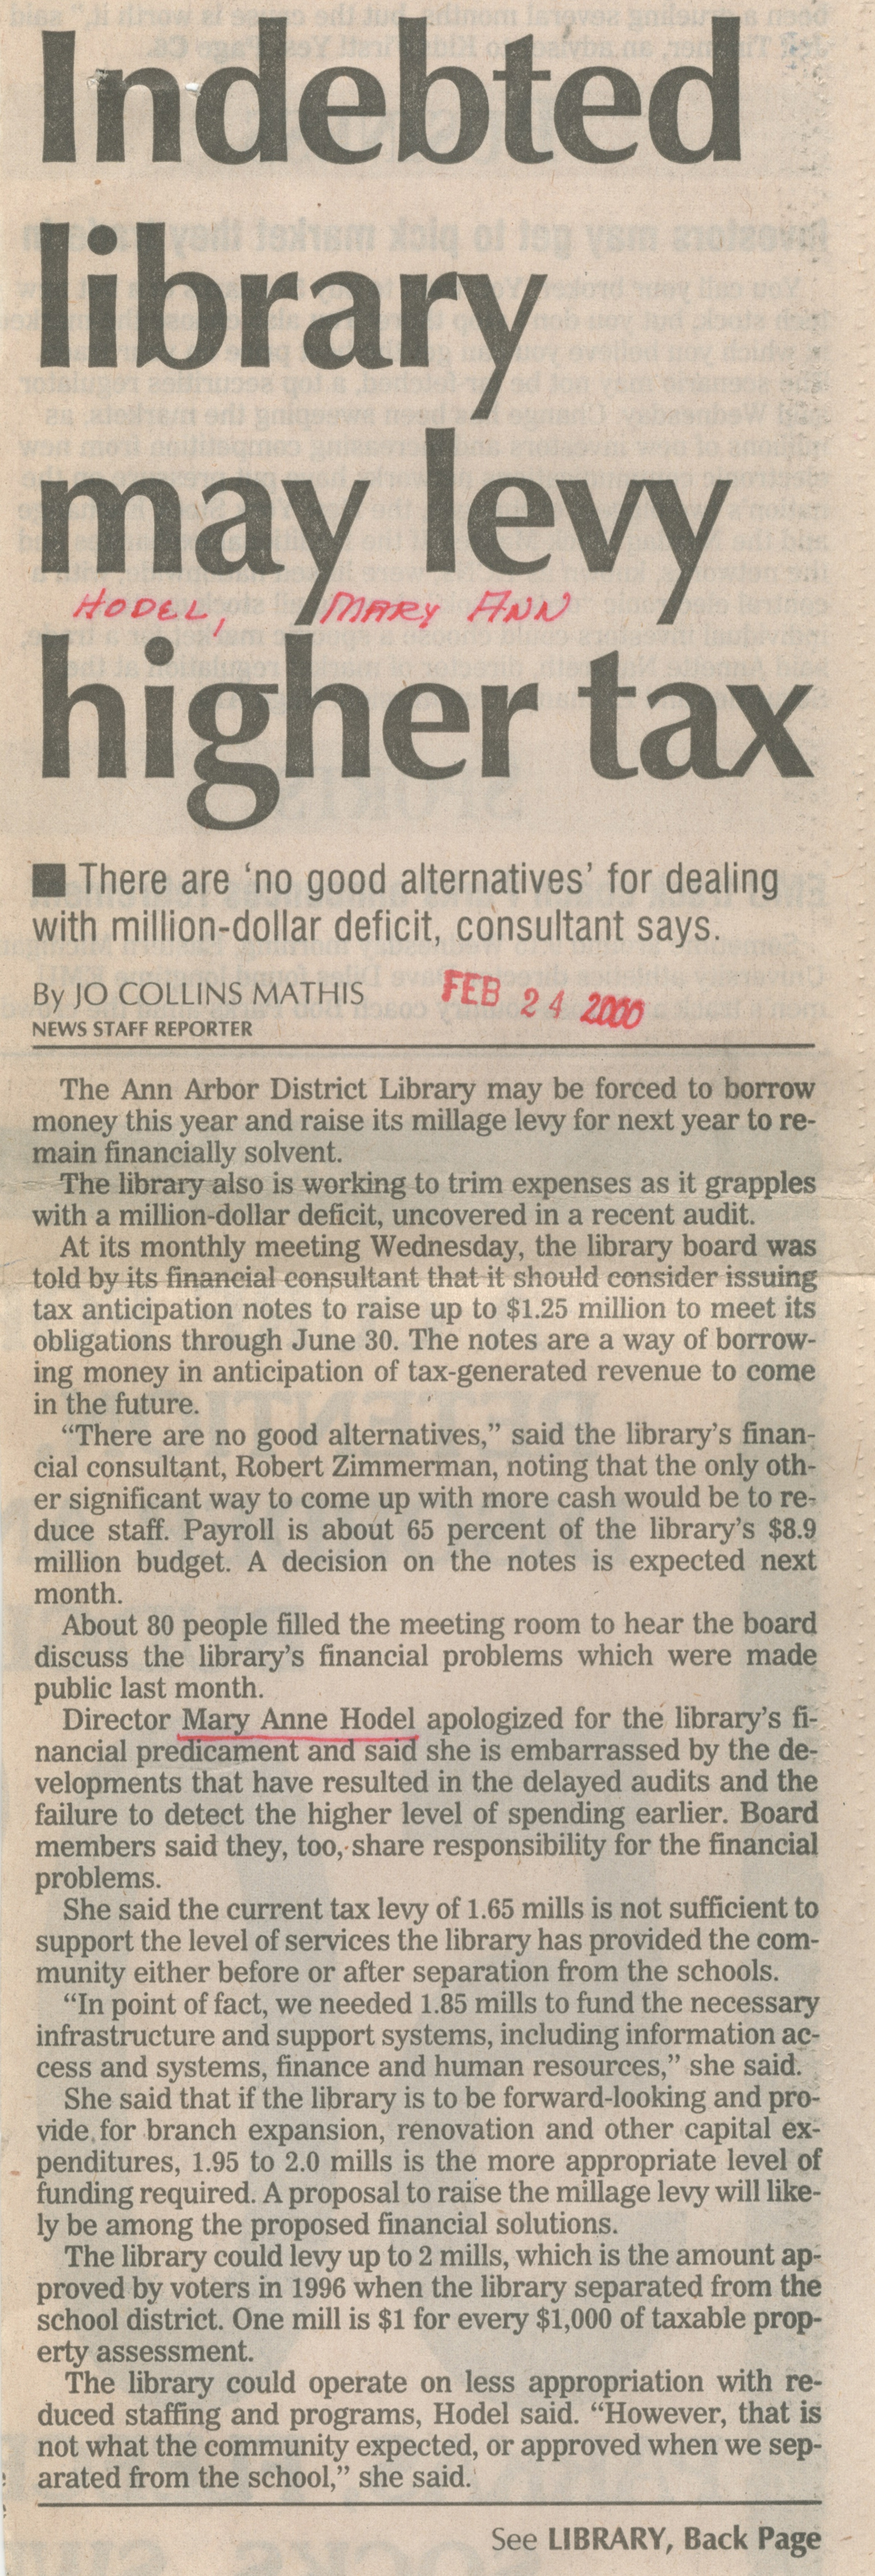 Indebted Library May Levy Higher Tax image